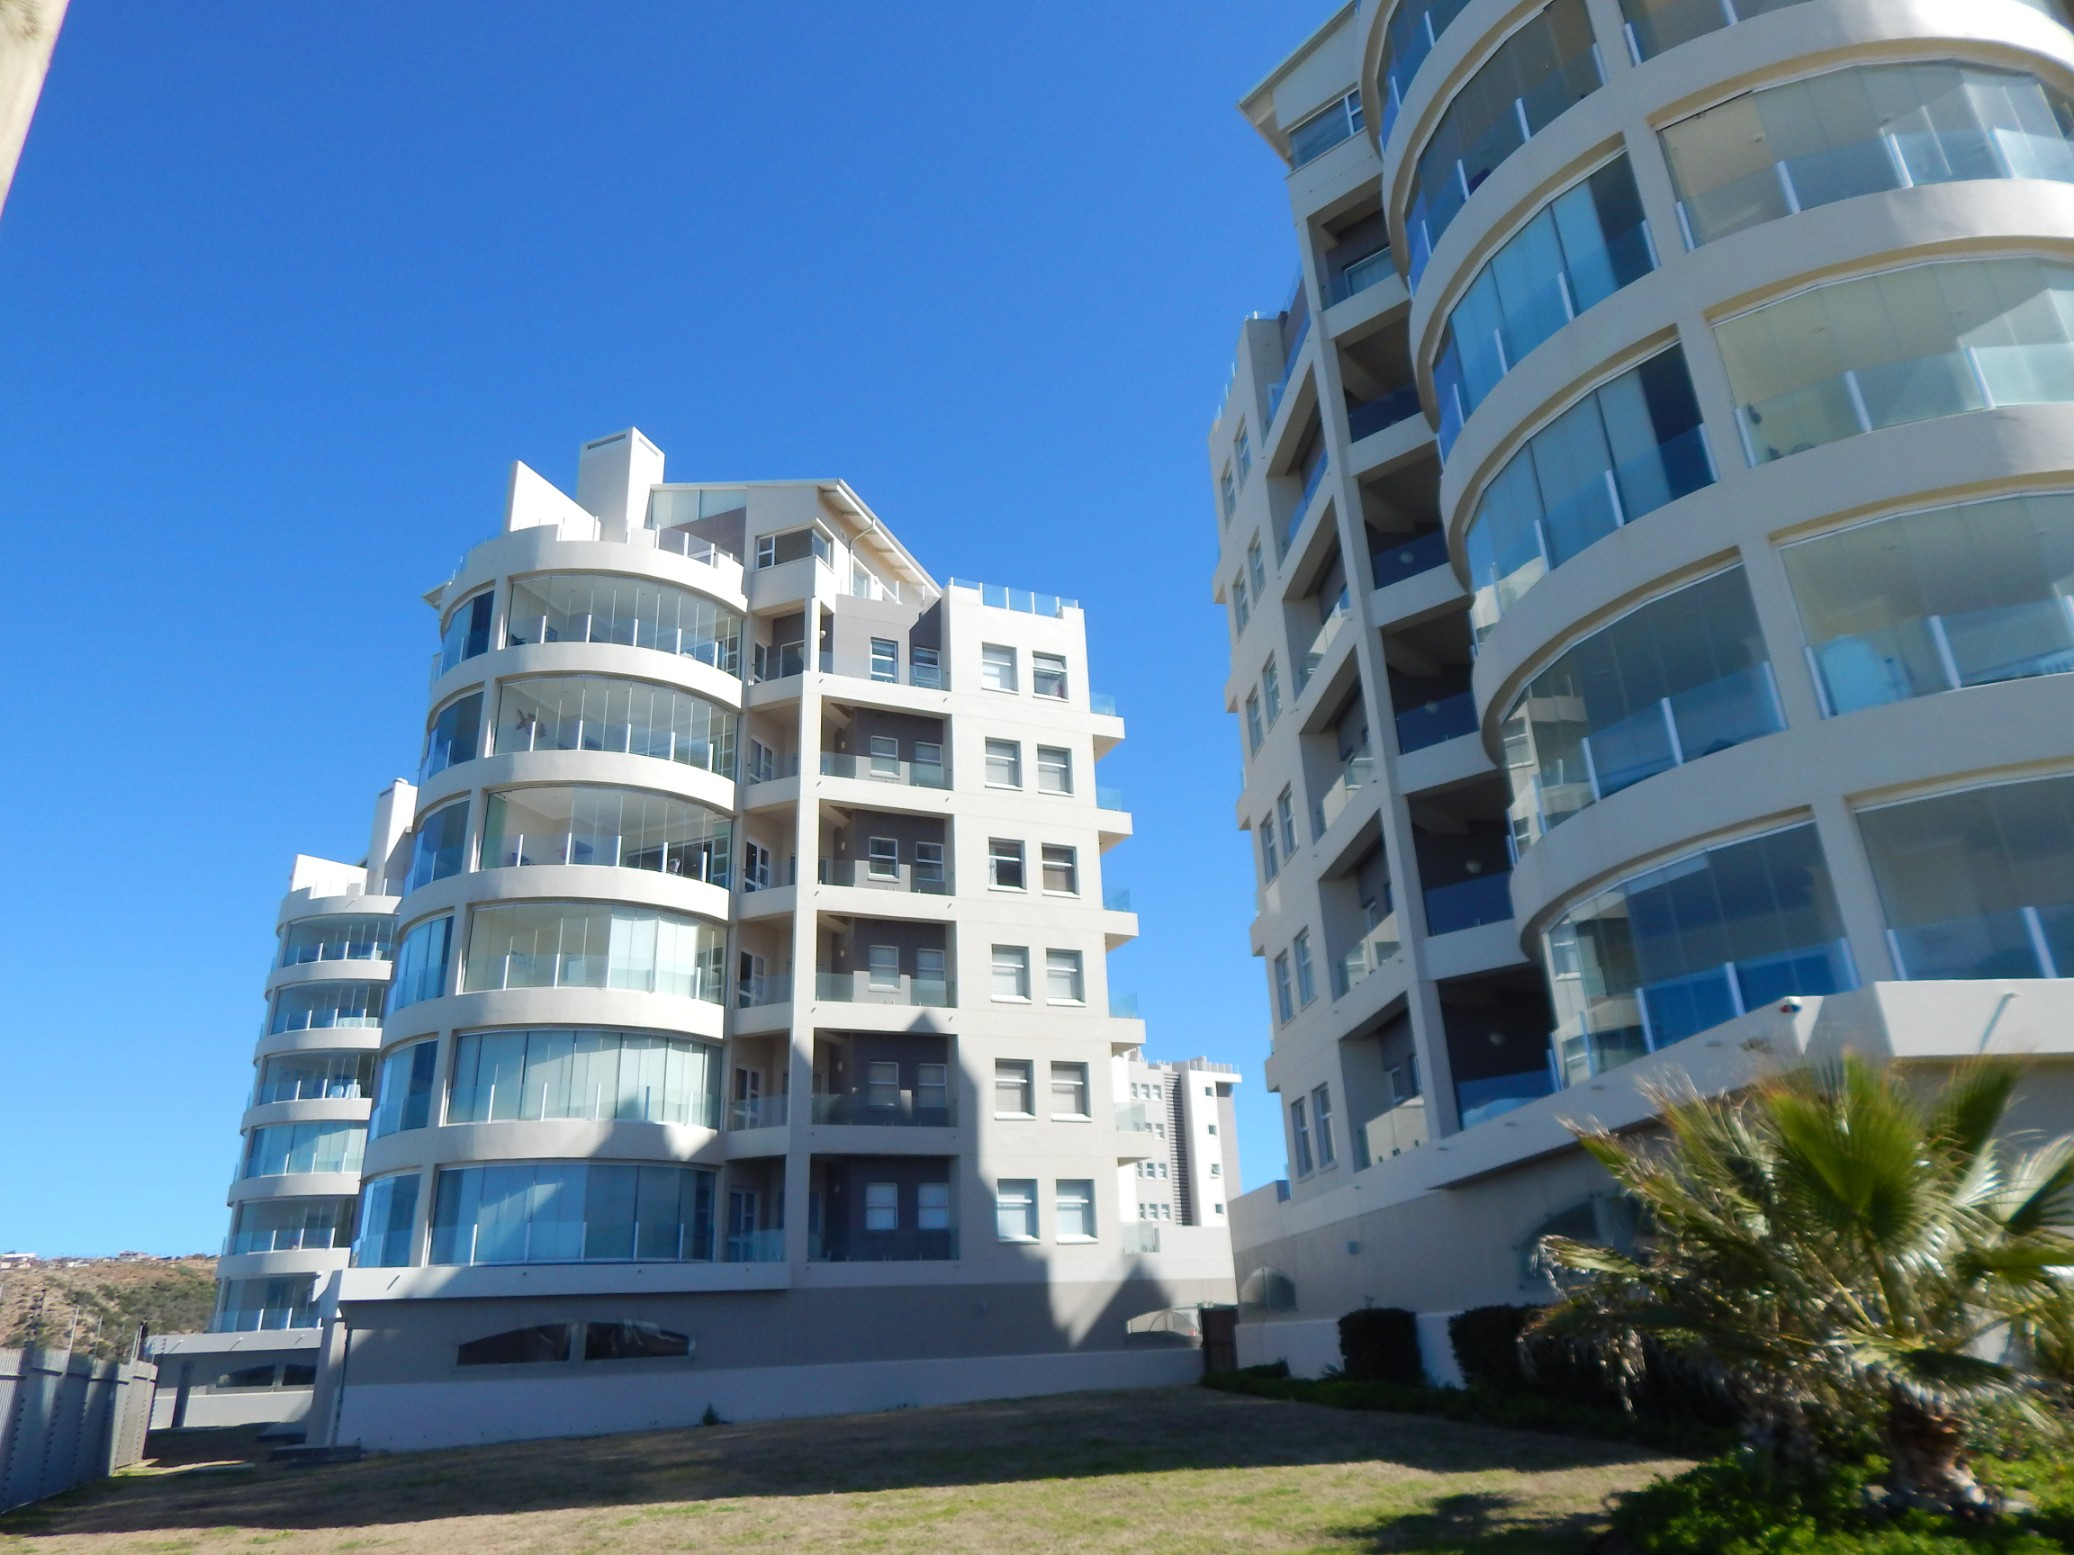 3 Bedroom Apartment for sale in Diaz Beach ENT0069020 : photo#1